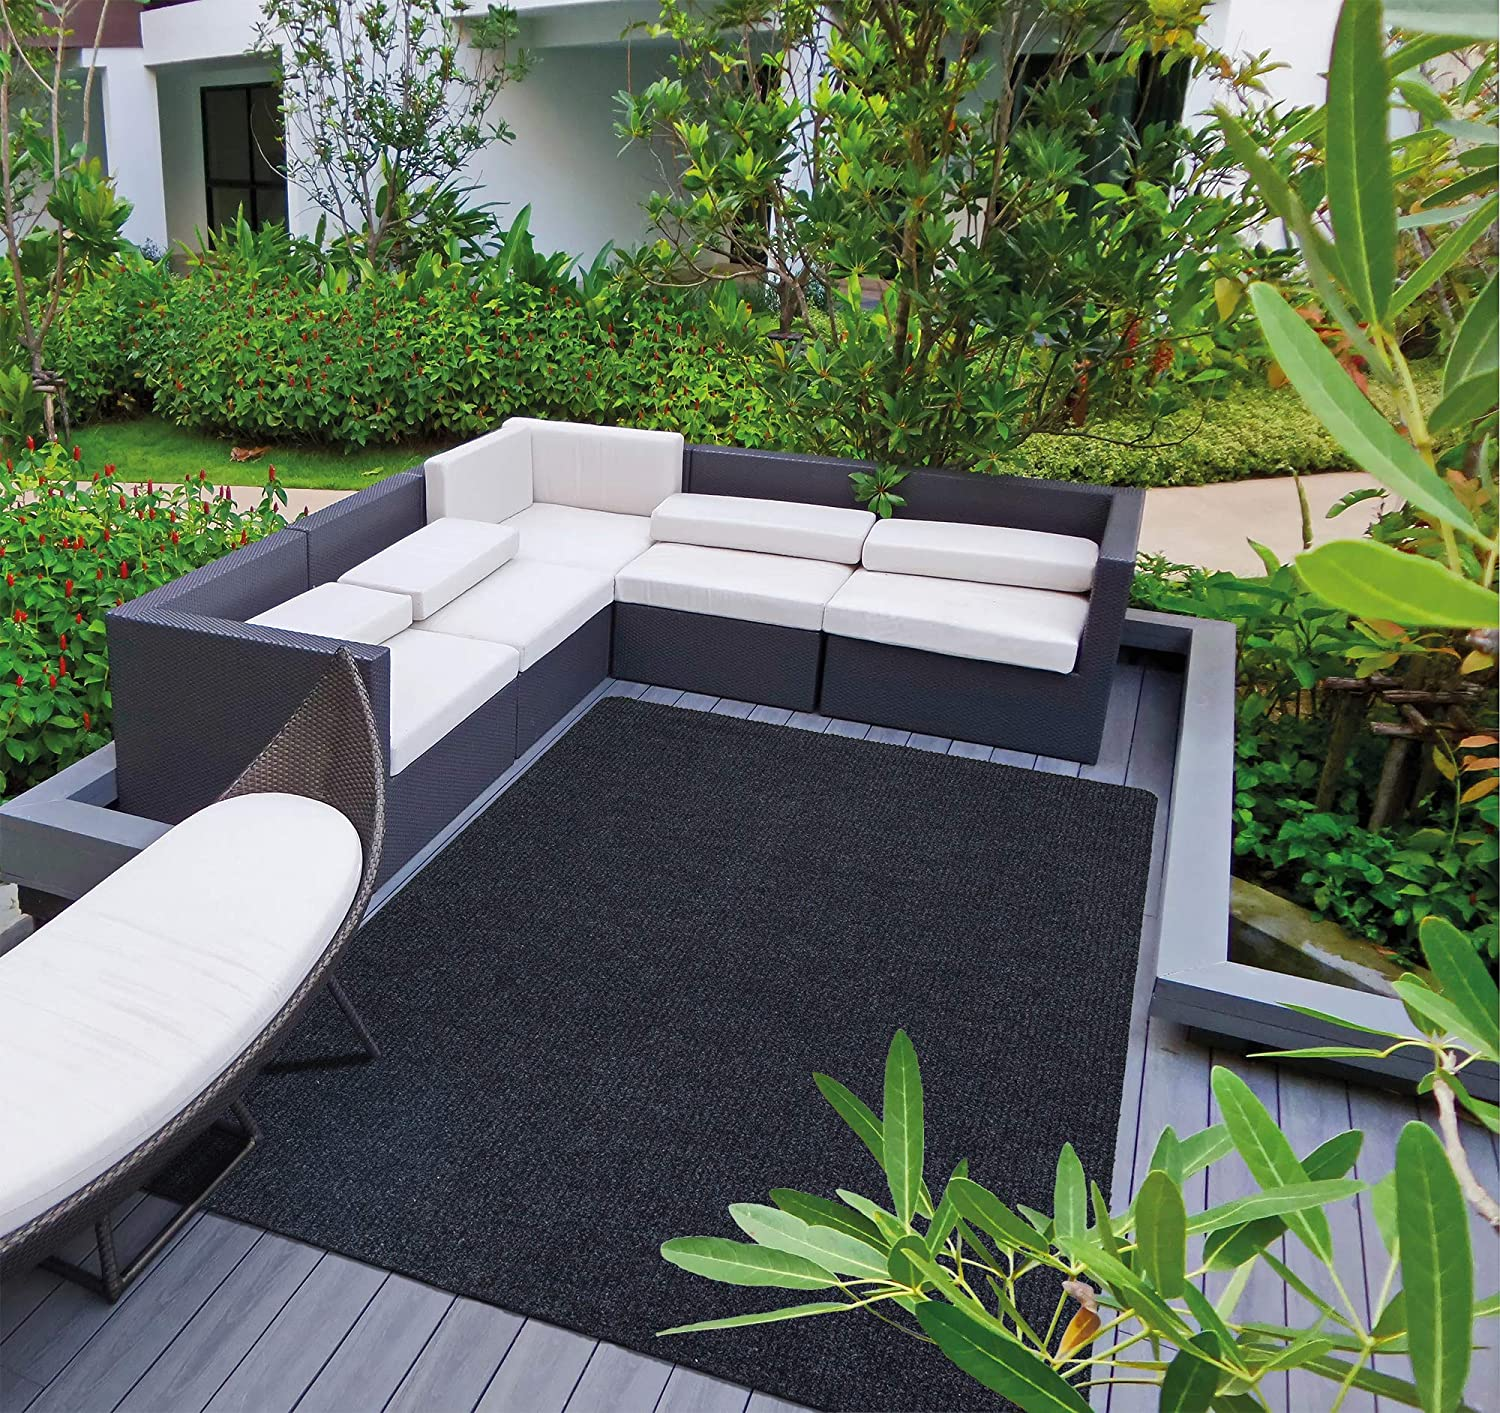 Sweethome Stores Rib Design Indoor/Outdoor Non-Slip Stair Treads and Rug